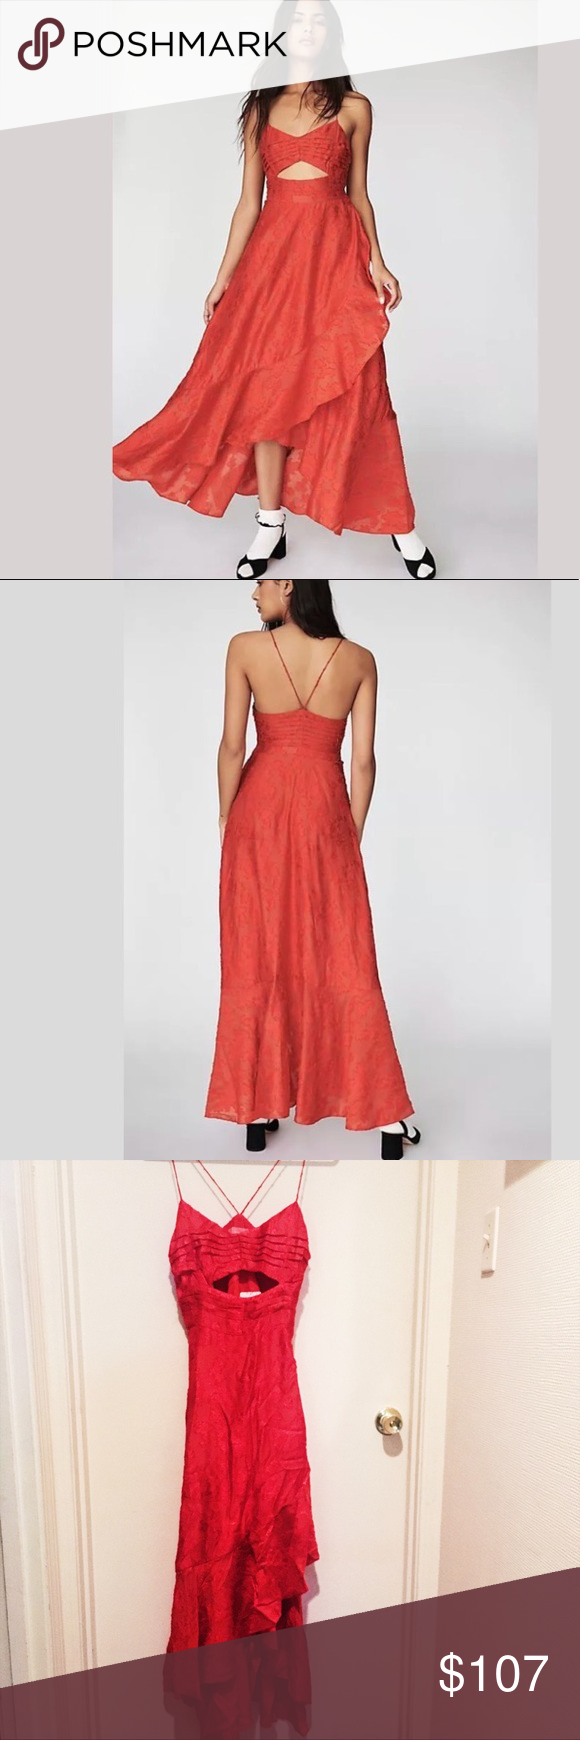 b0af4e0bcb9 65% off 💃🏼 Free People Buona Sera Maxi Dress FP buona sera dress • new  with tags • size 8 • red with subtle embroidery • has a lot of shape to ...